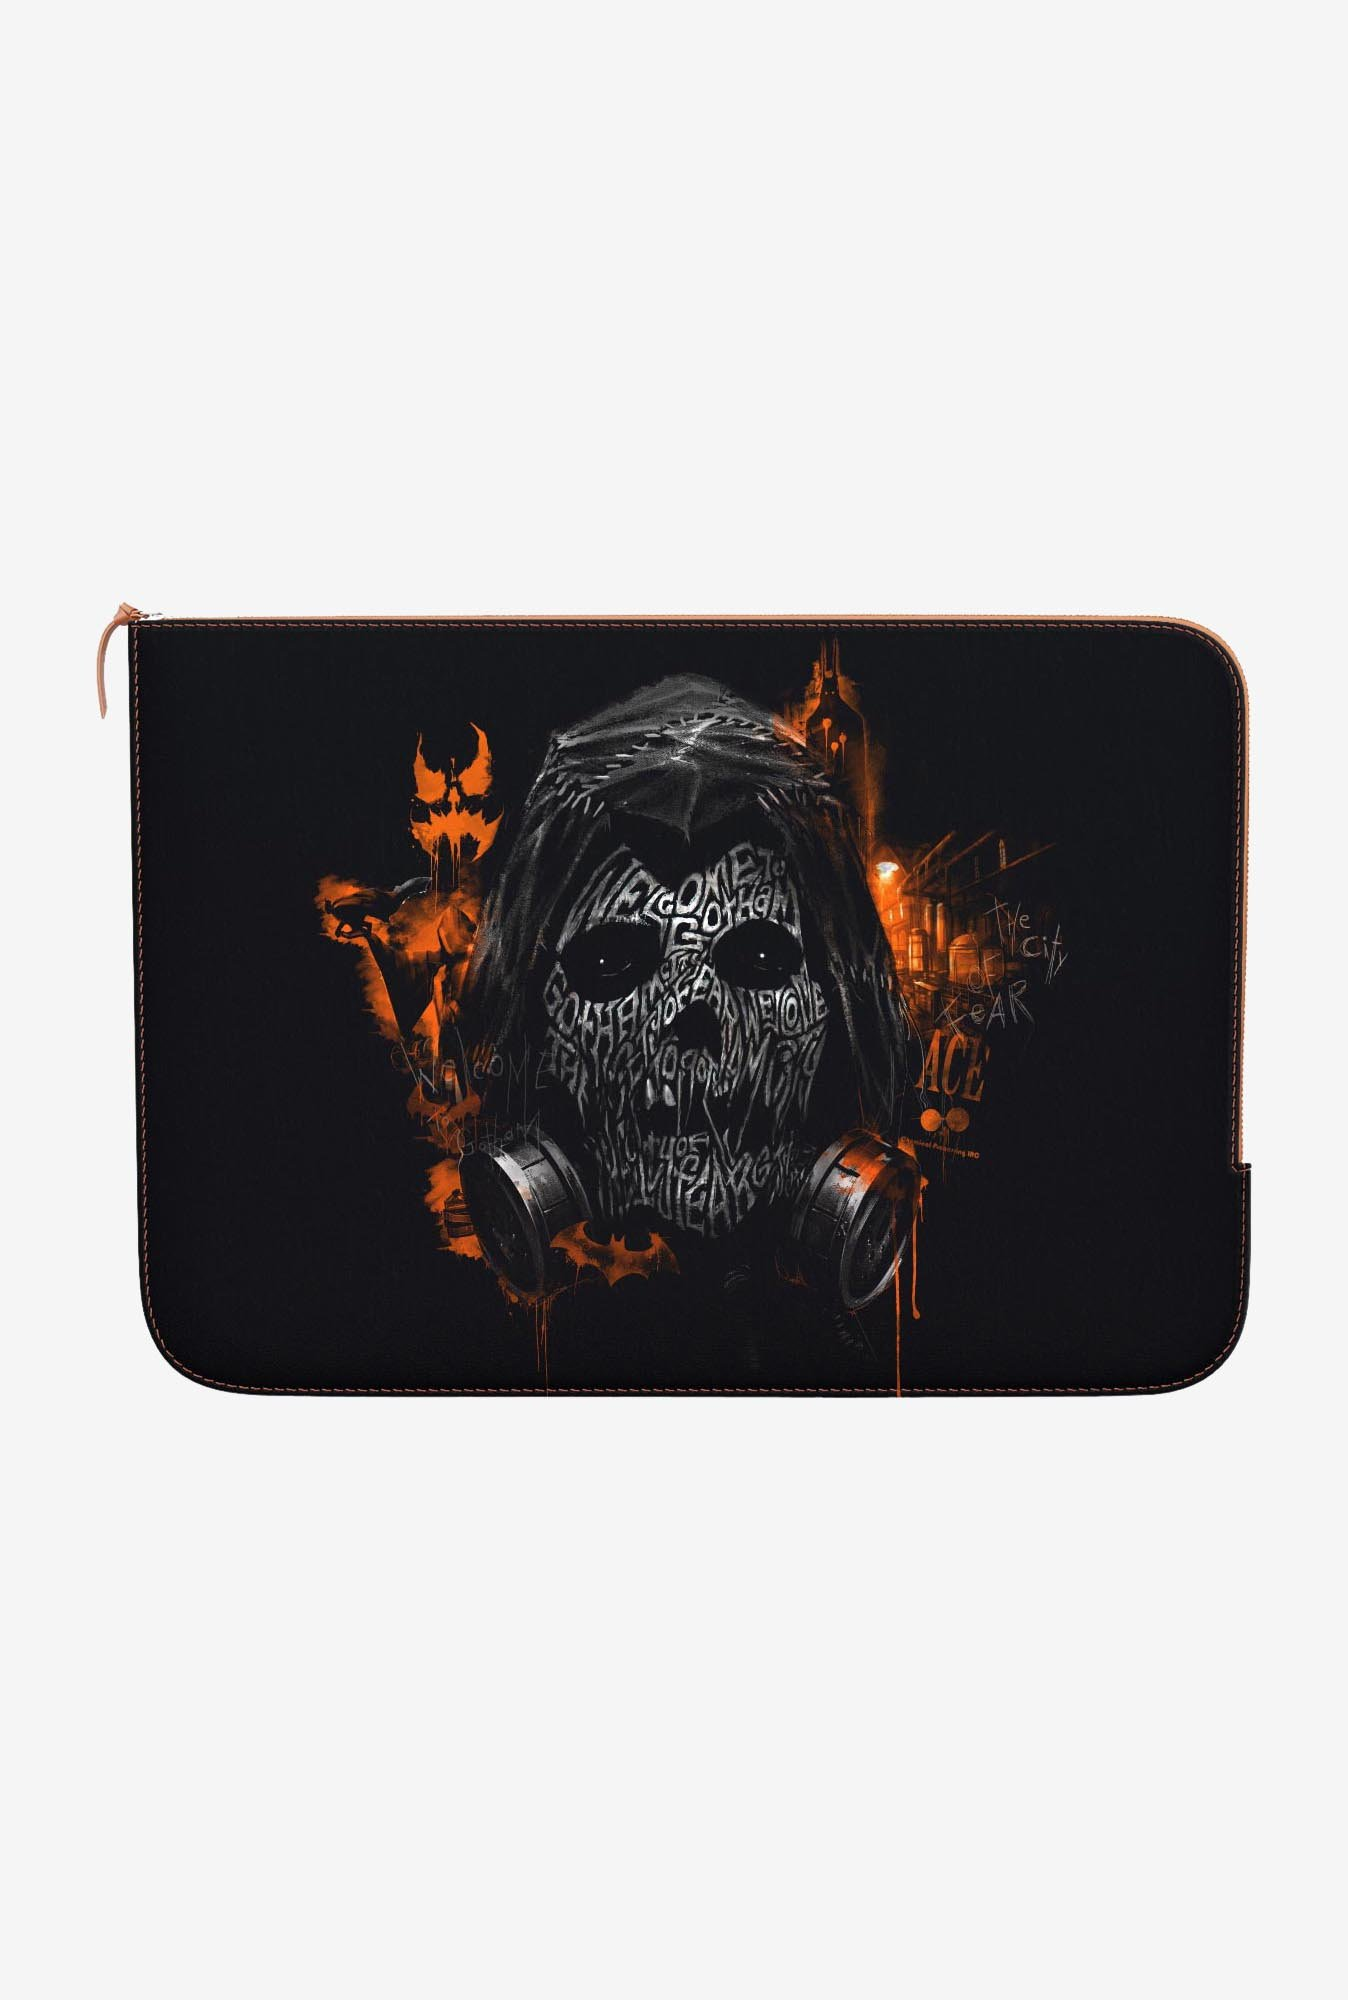 DailyObjects Scarecrow Neon MacBook Air 11 Zippered Sleeve